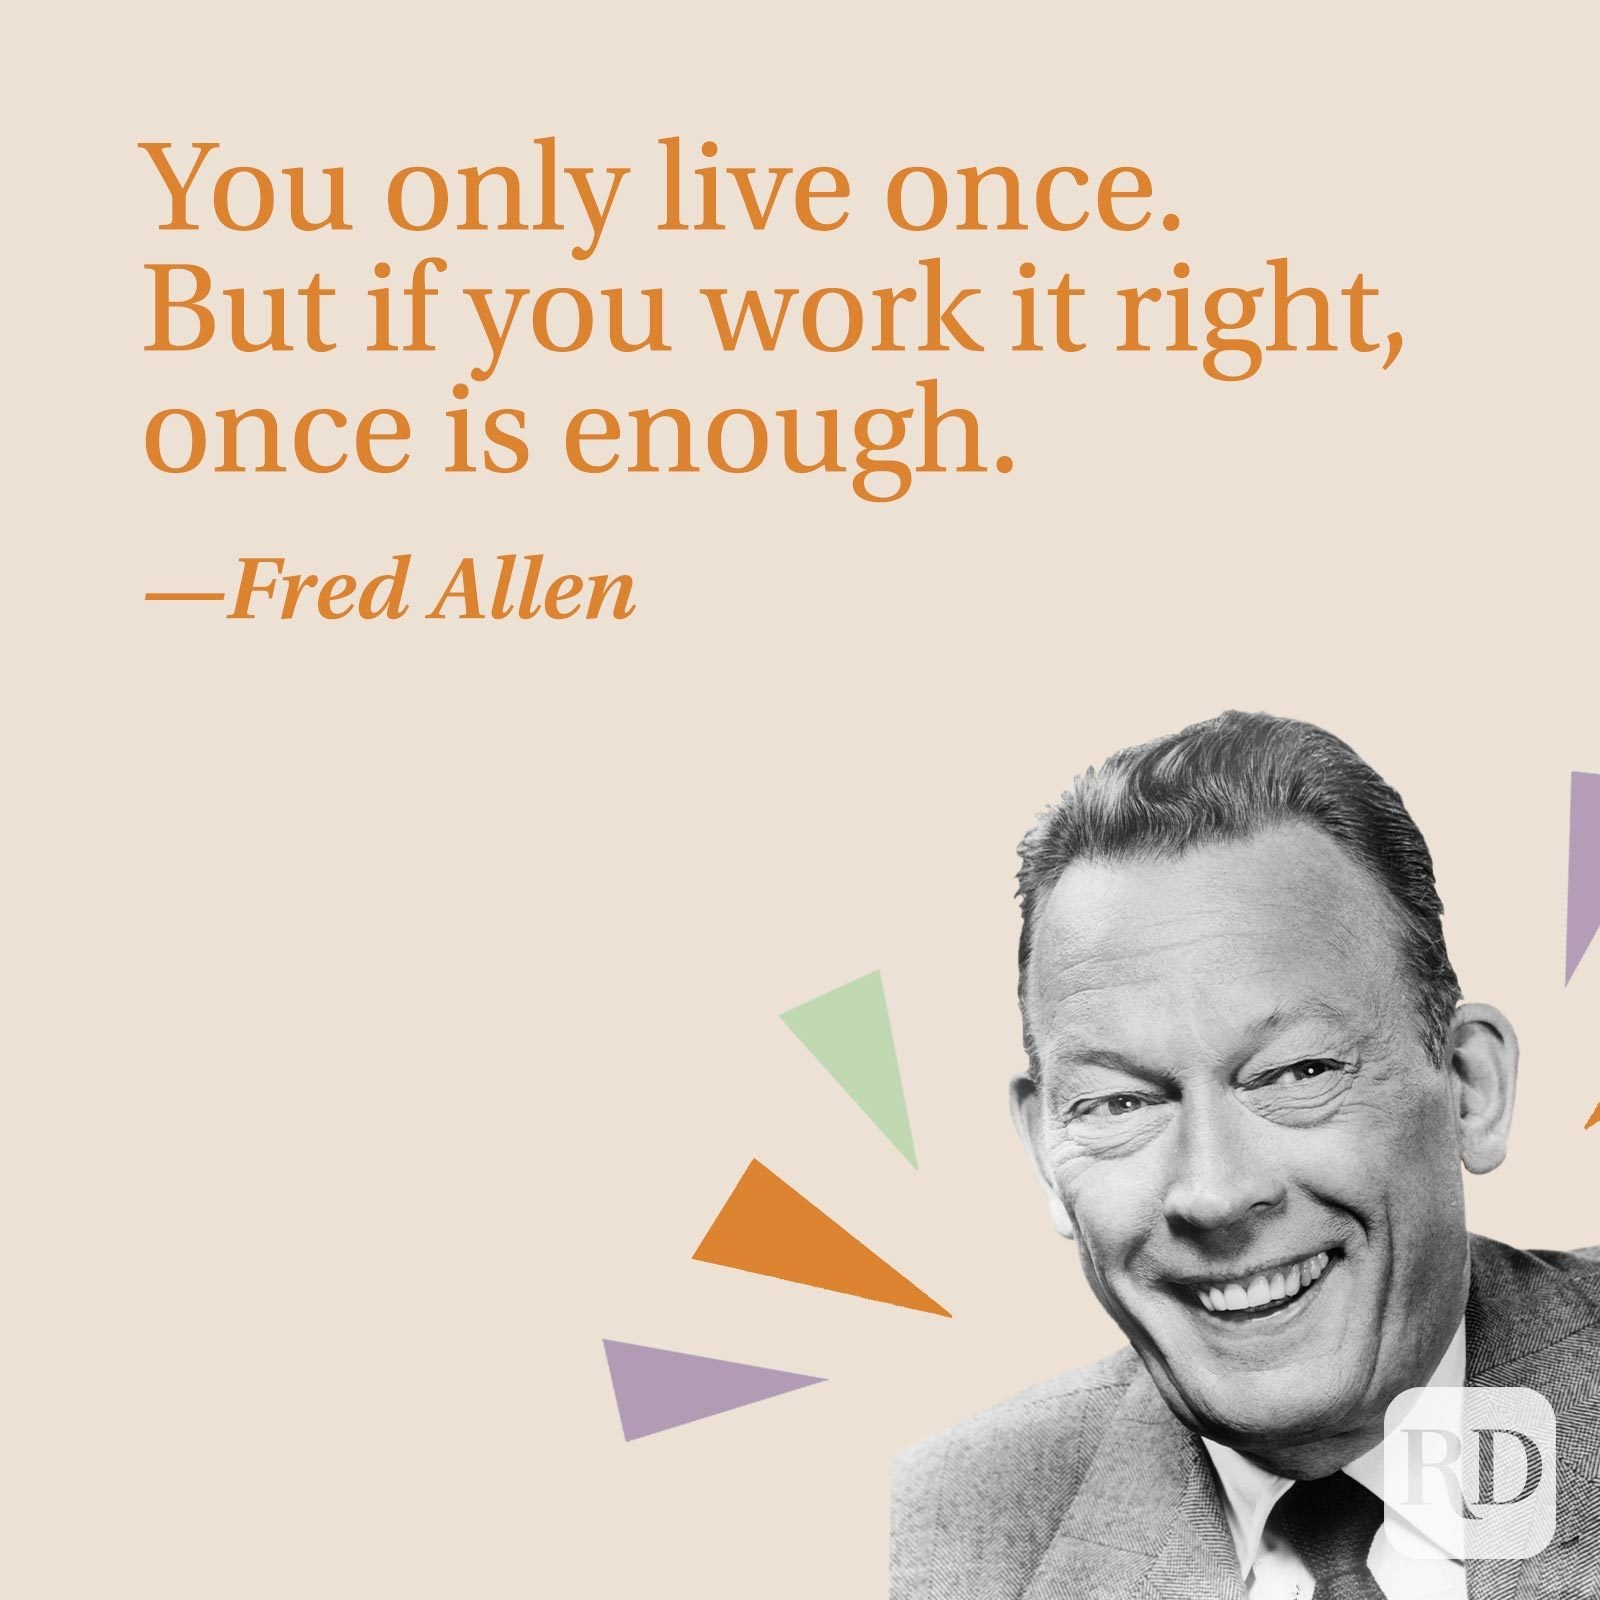 You only live once. But if you work it right, once is enough.—Fred Allen